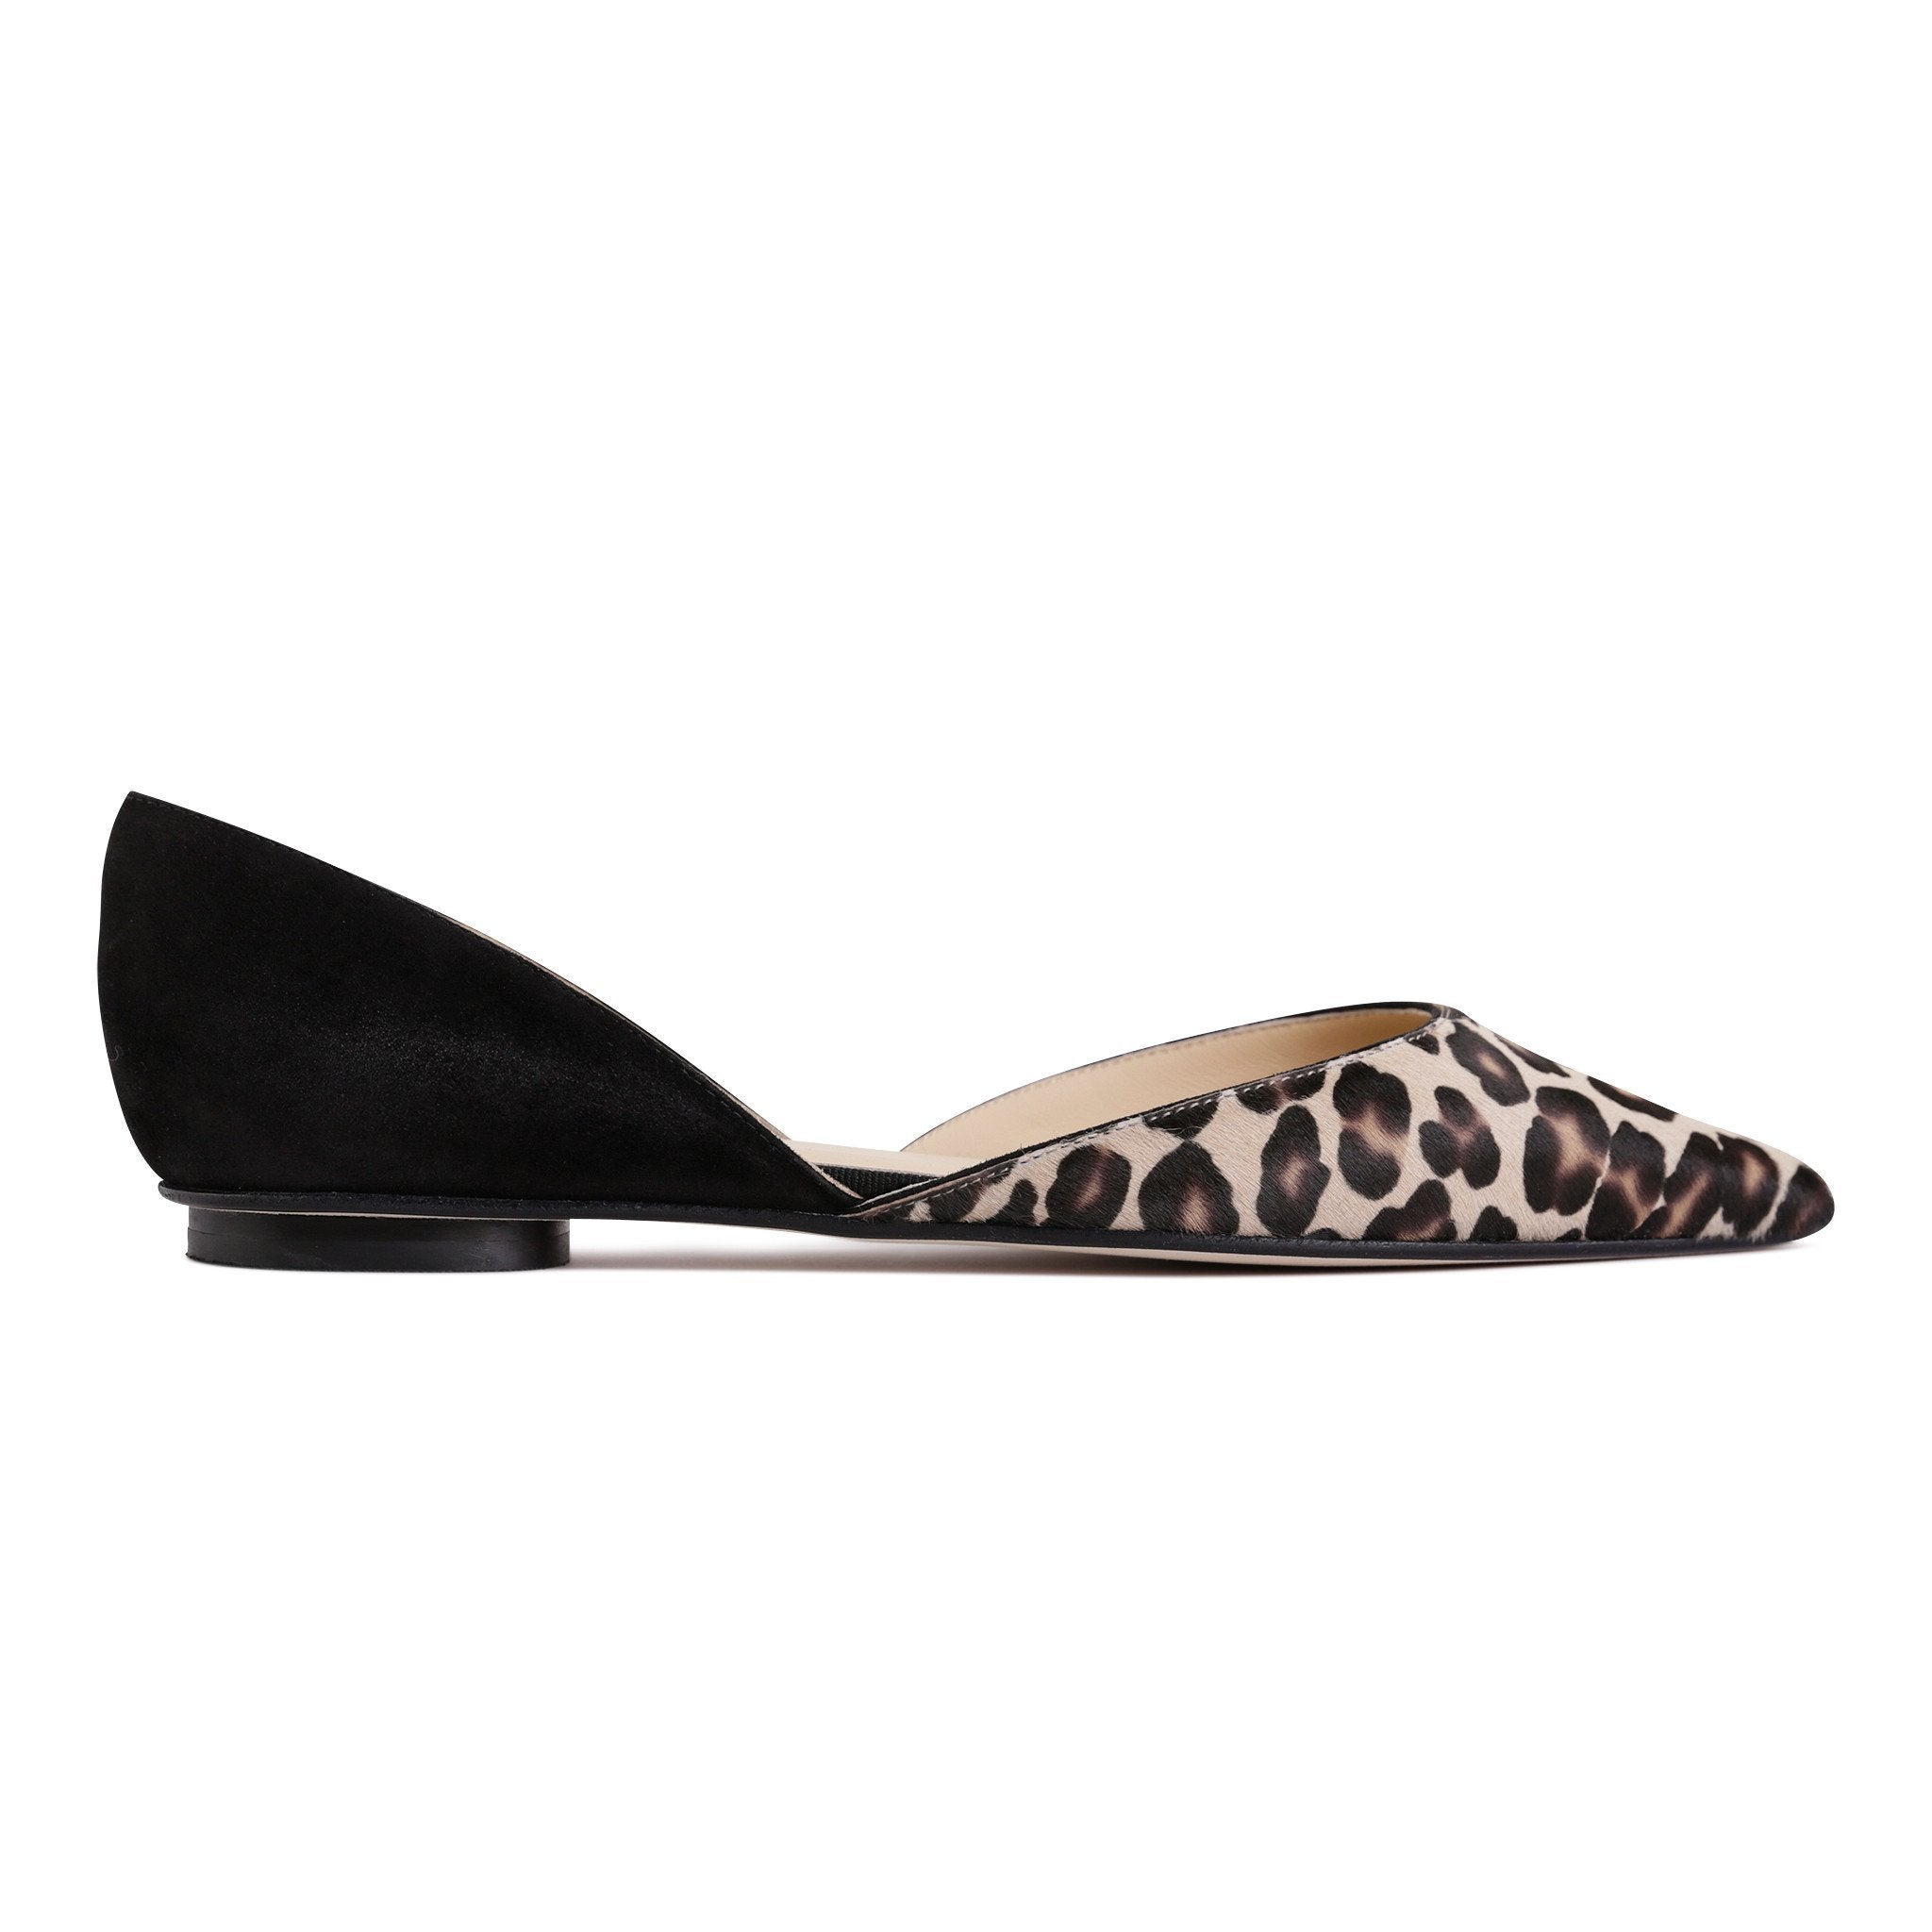 PONZA - Velukid Nero + Calf Hair Congo, VIAJIYU - Women's Hand Made Sustainable Luxury Shoes. Made in Italy. Made to Order.